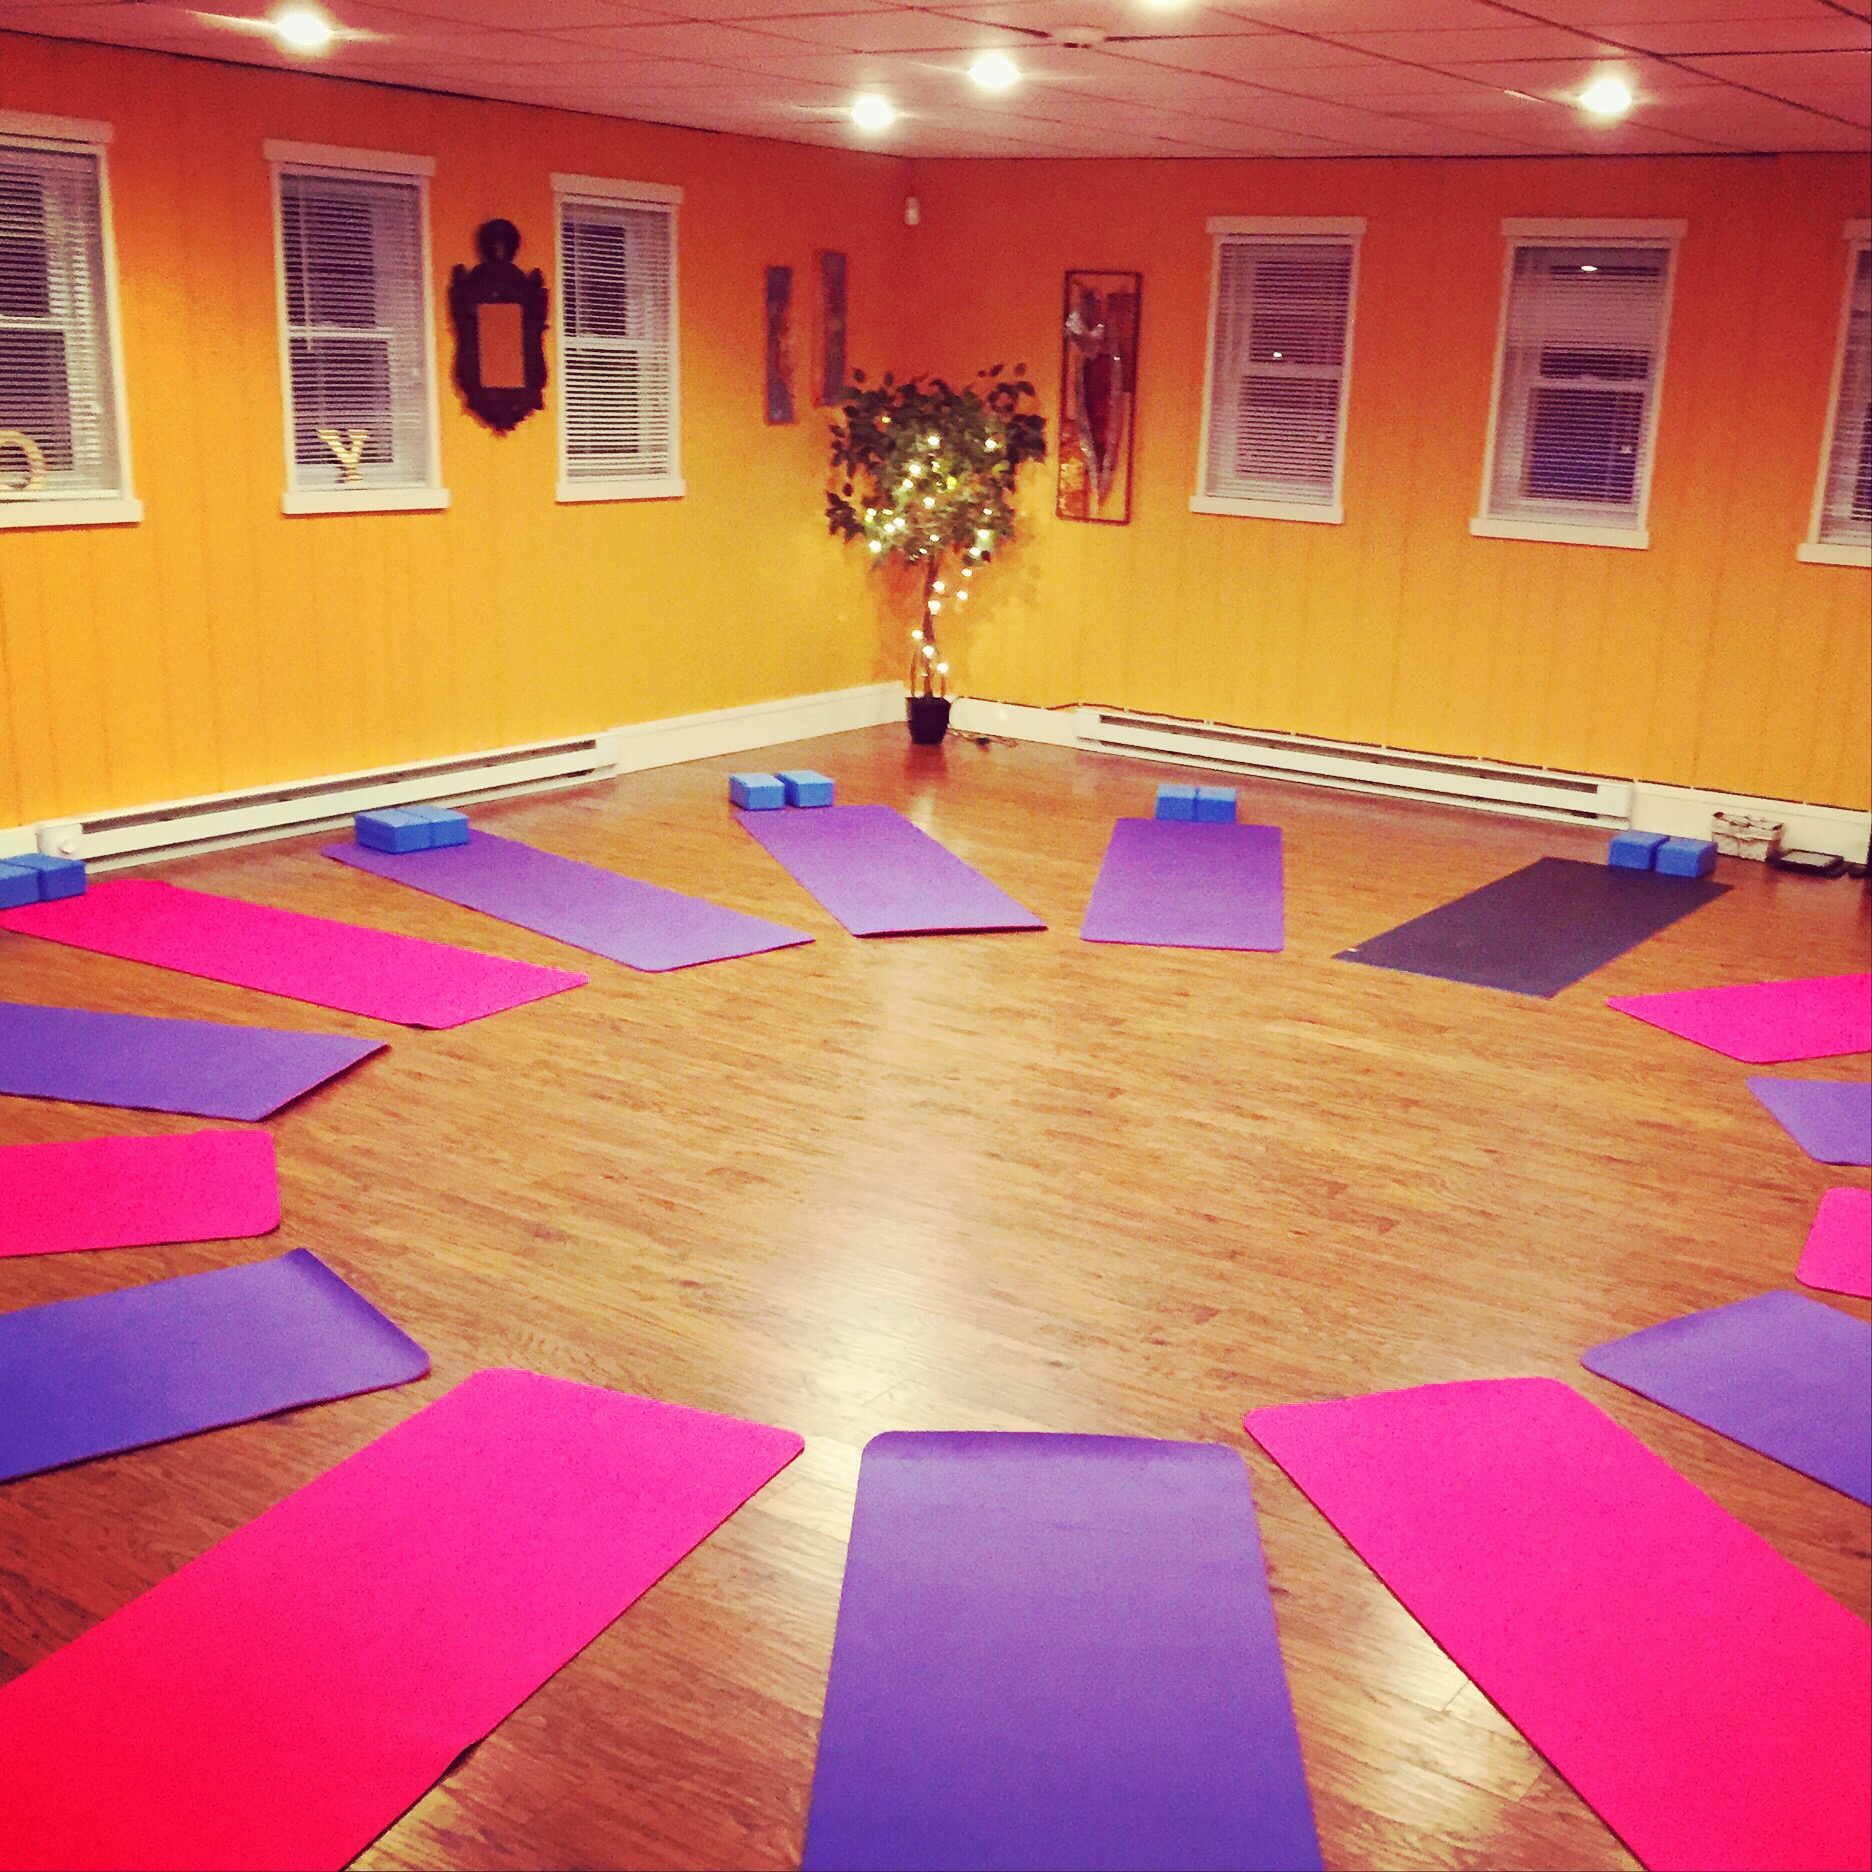 Kids studio classes - Tuesday, 6PM and Saturday, 11AM